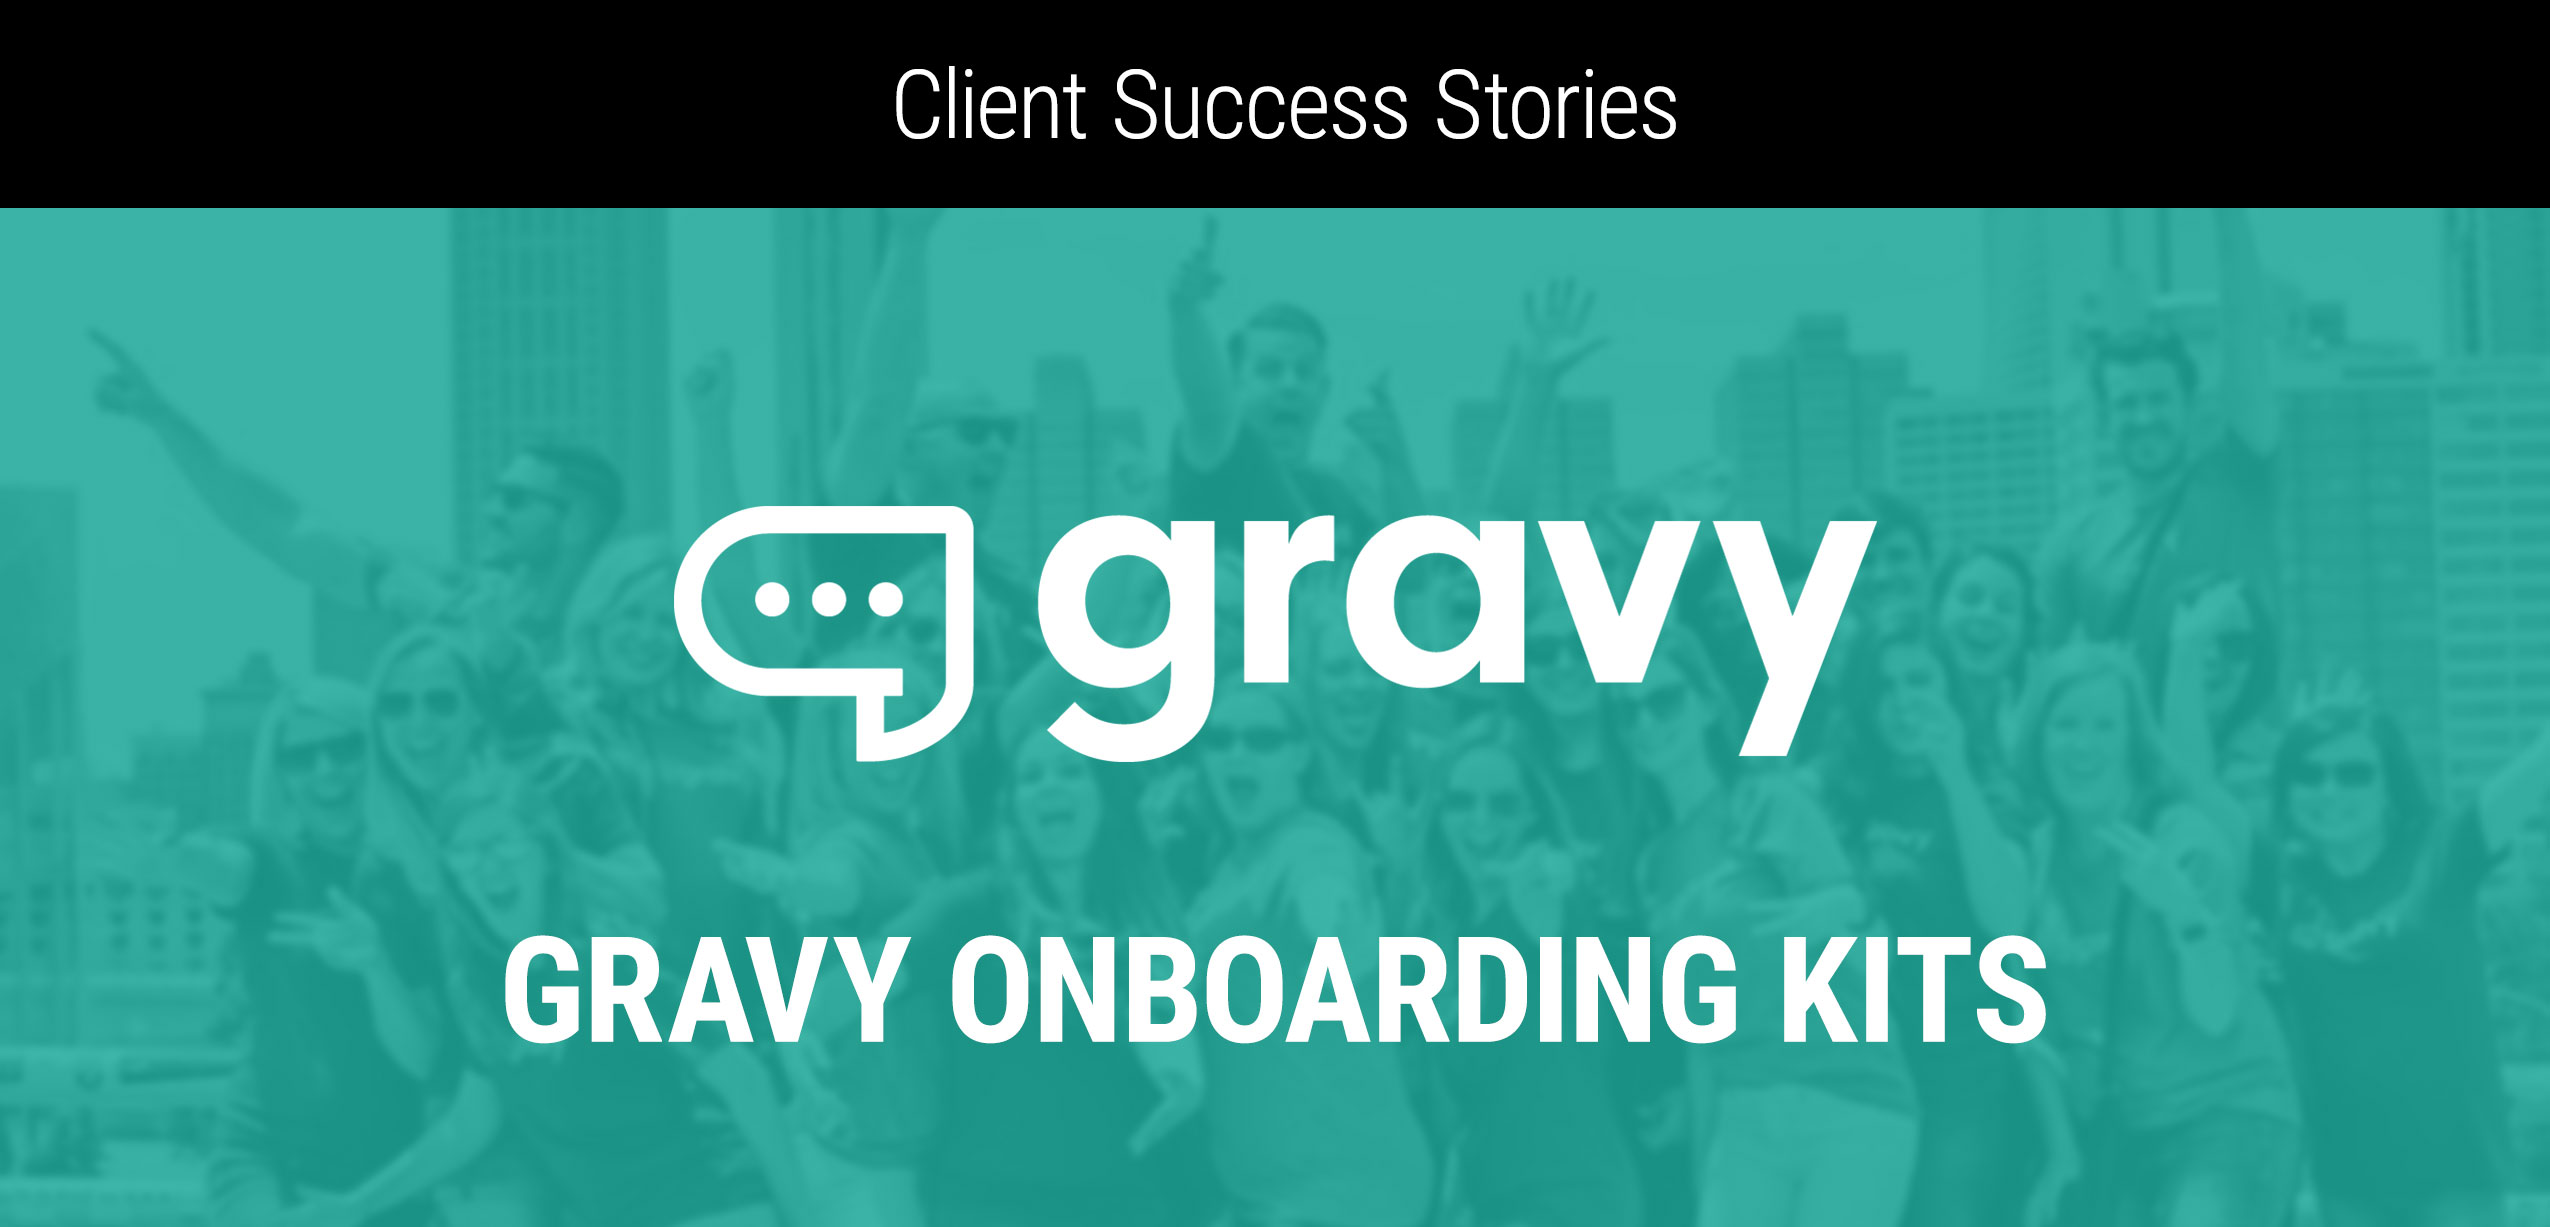 Client Success Story: Gravy Solutions Onboarding Kits